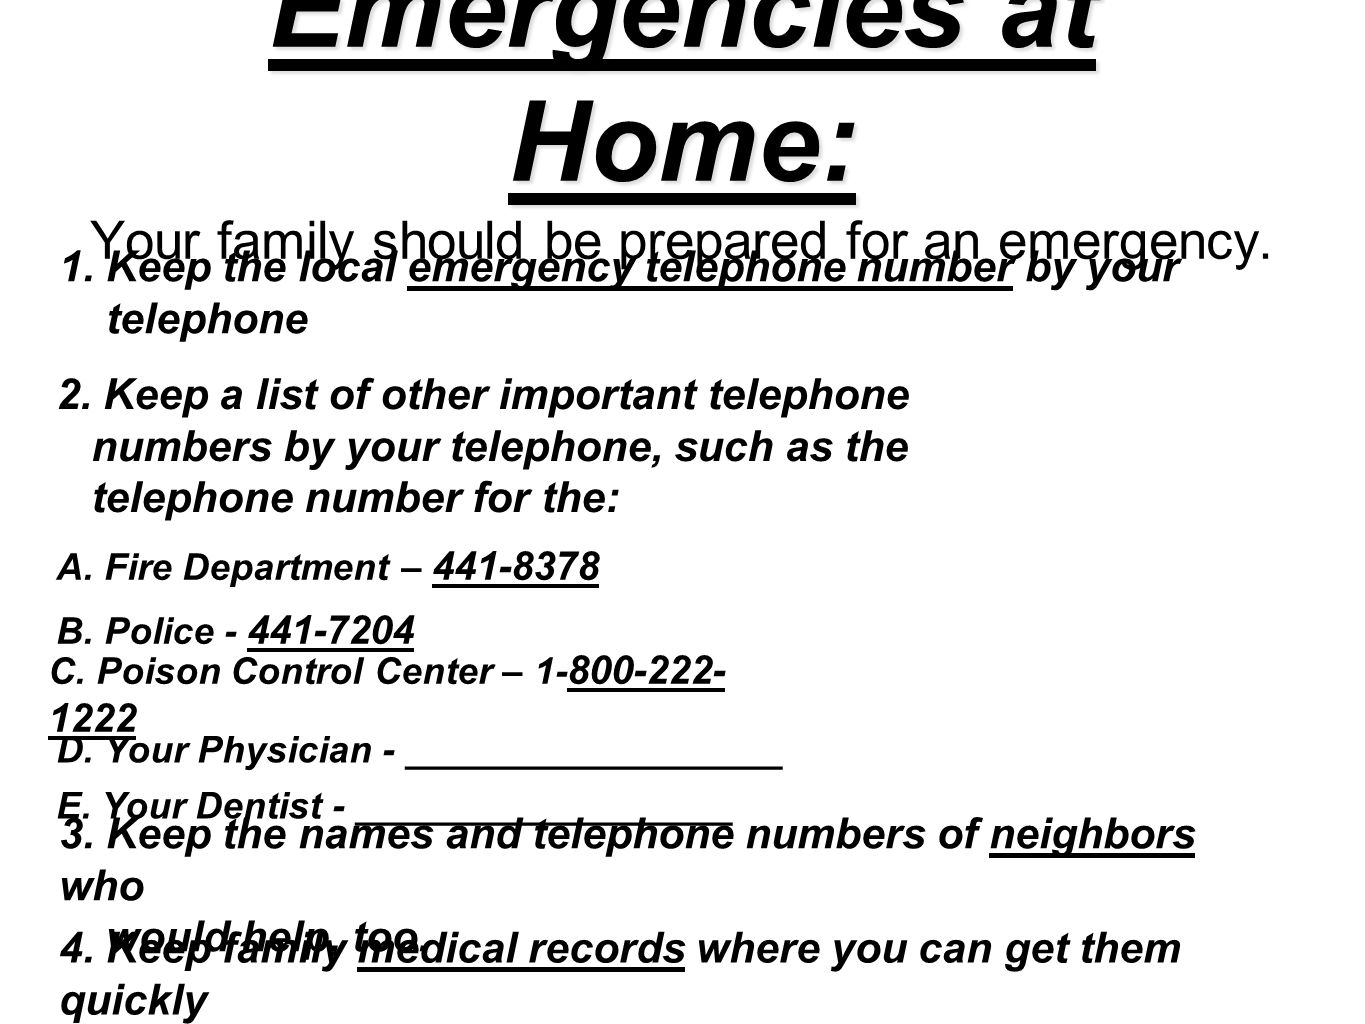 Emergencies at Home: Your family should be prepared for an emergency.